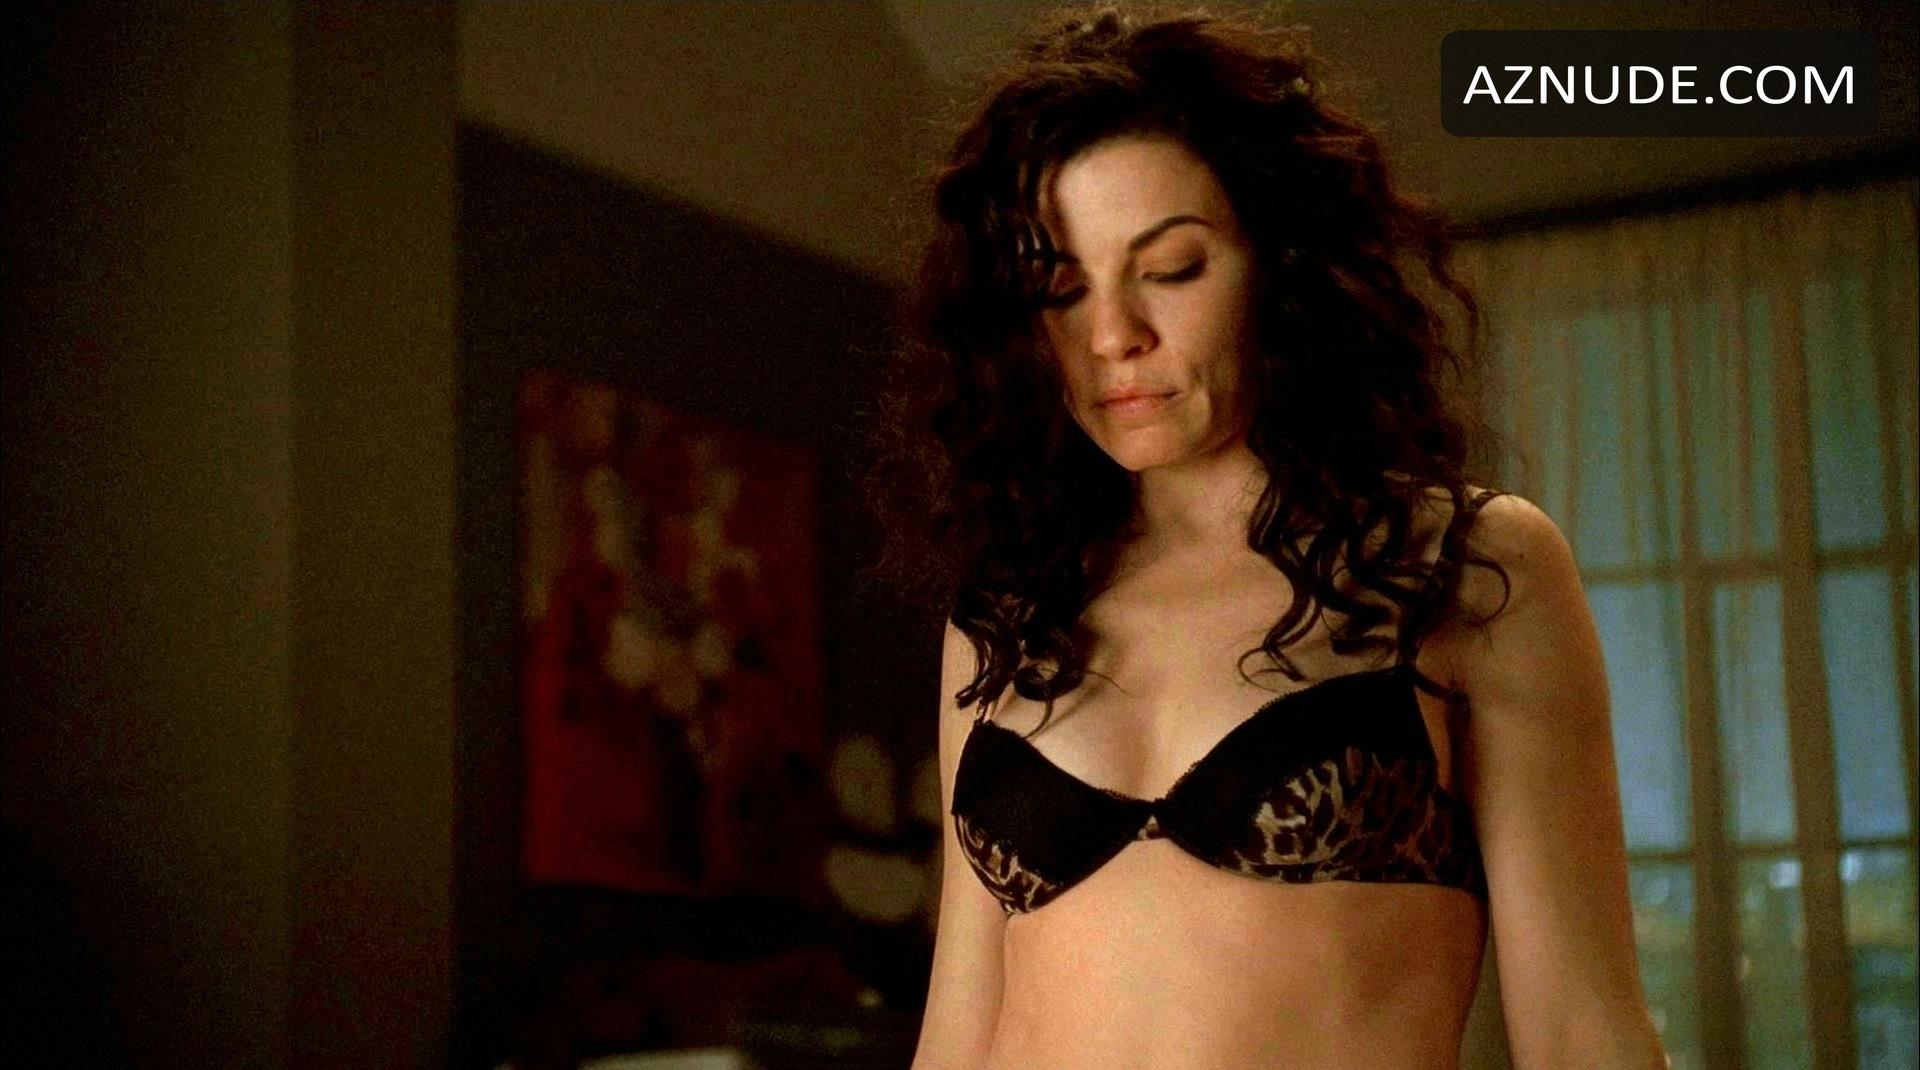 Seldom.. possible Julianna margulies nude photos with you